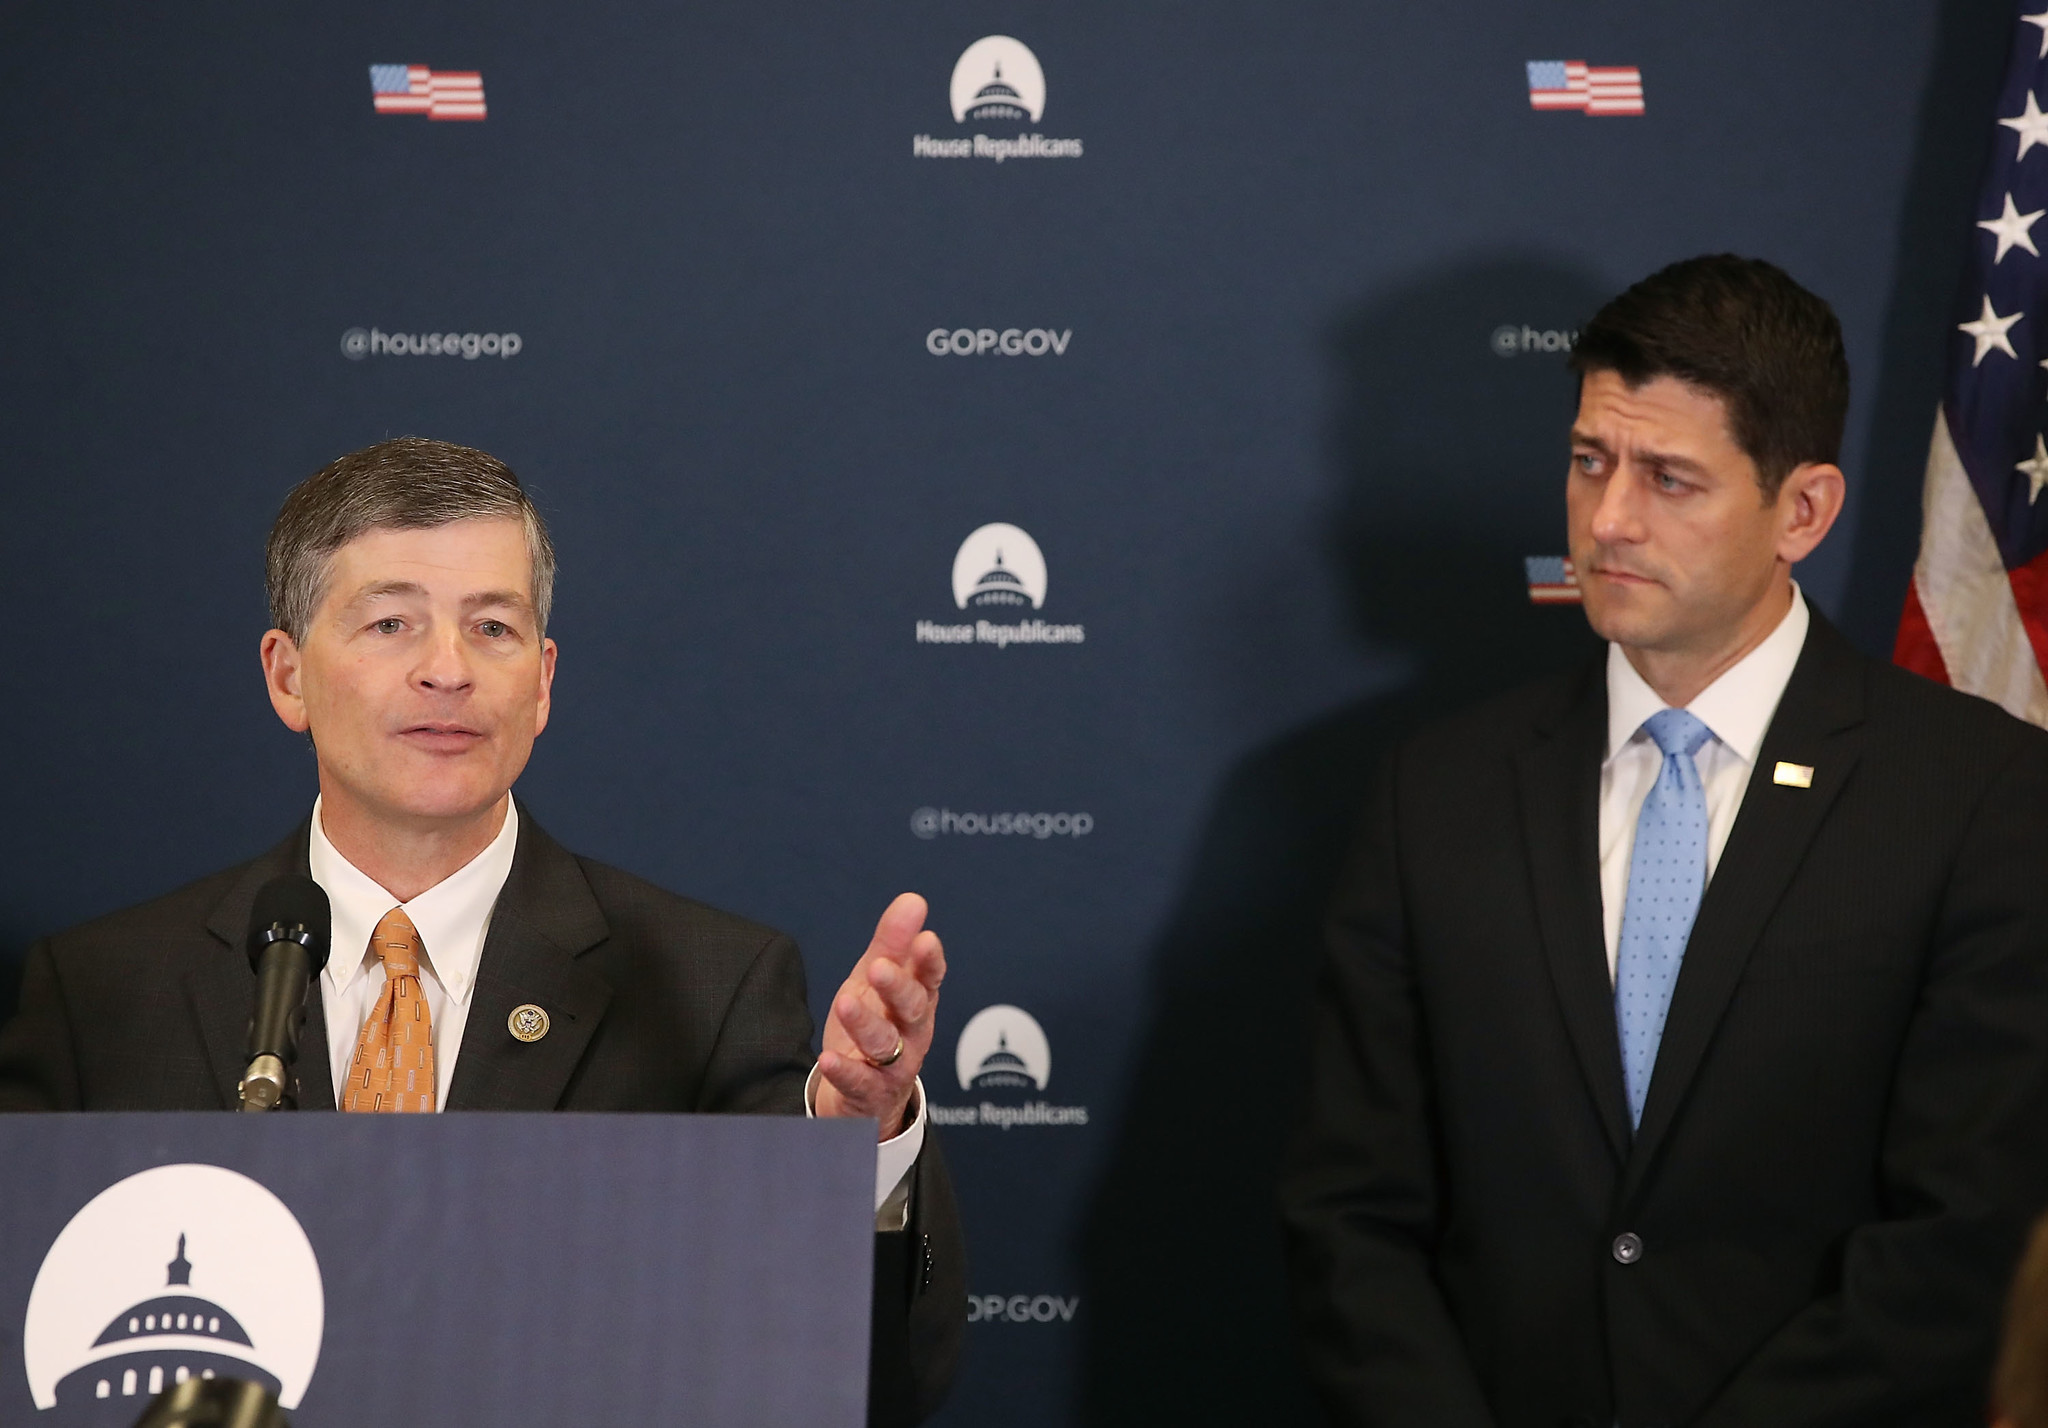 House votes along party lines to repeal key Dodd-Frank financial reforms